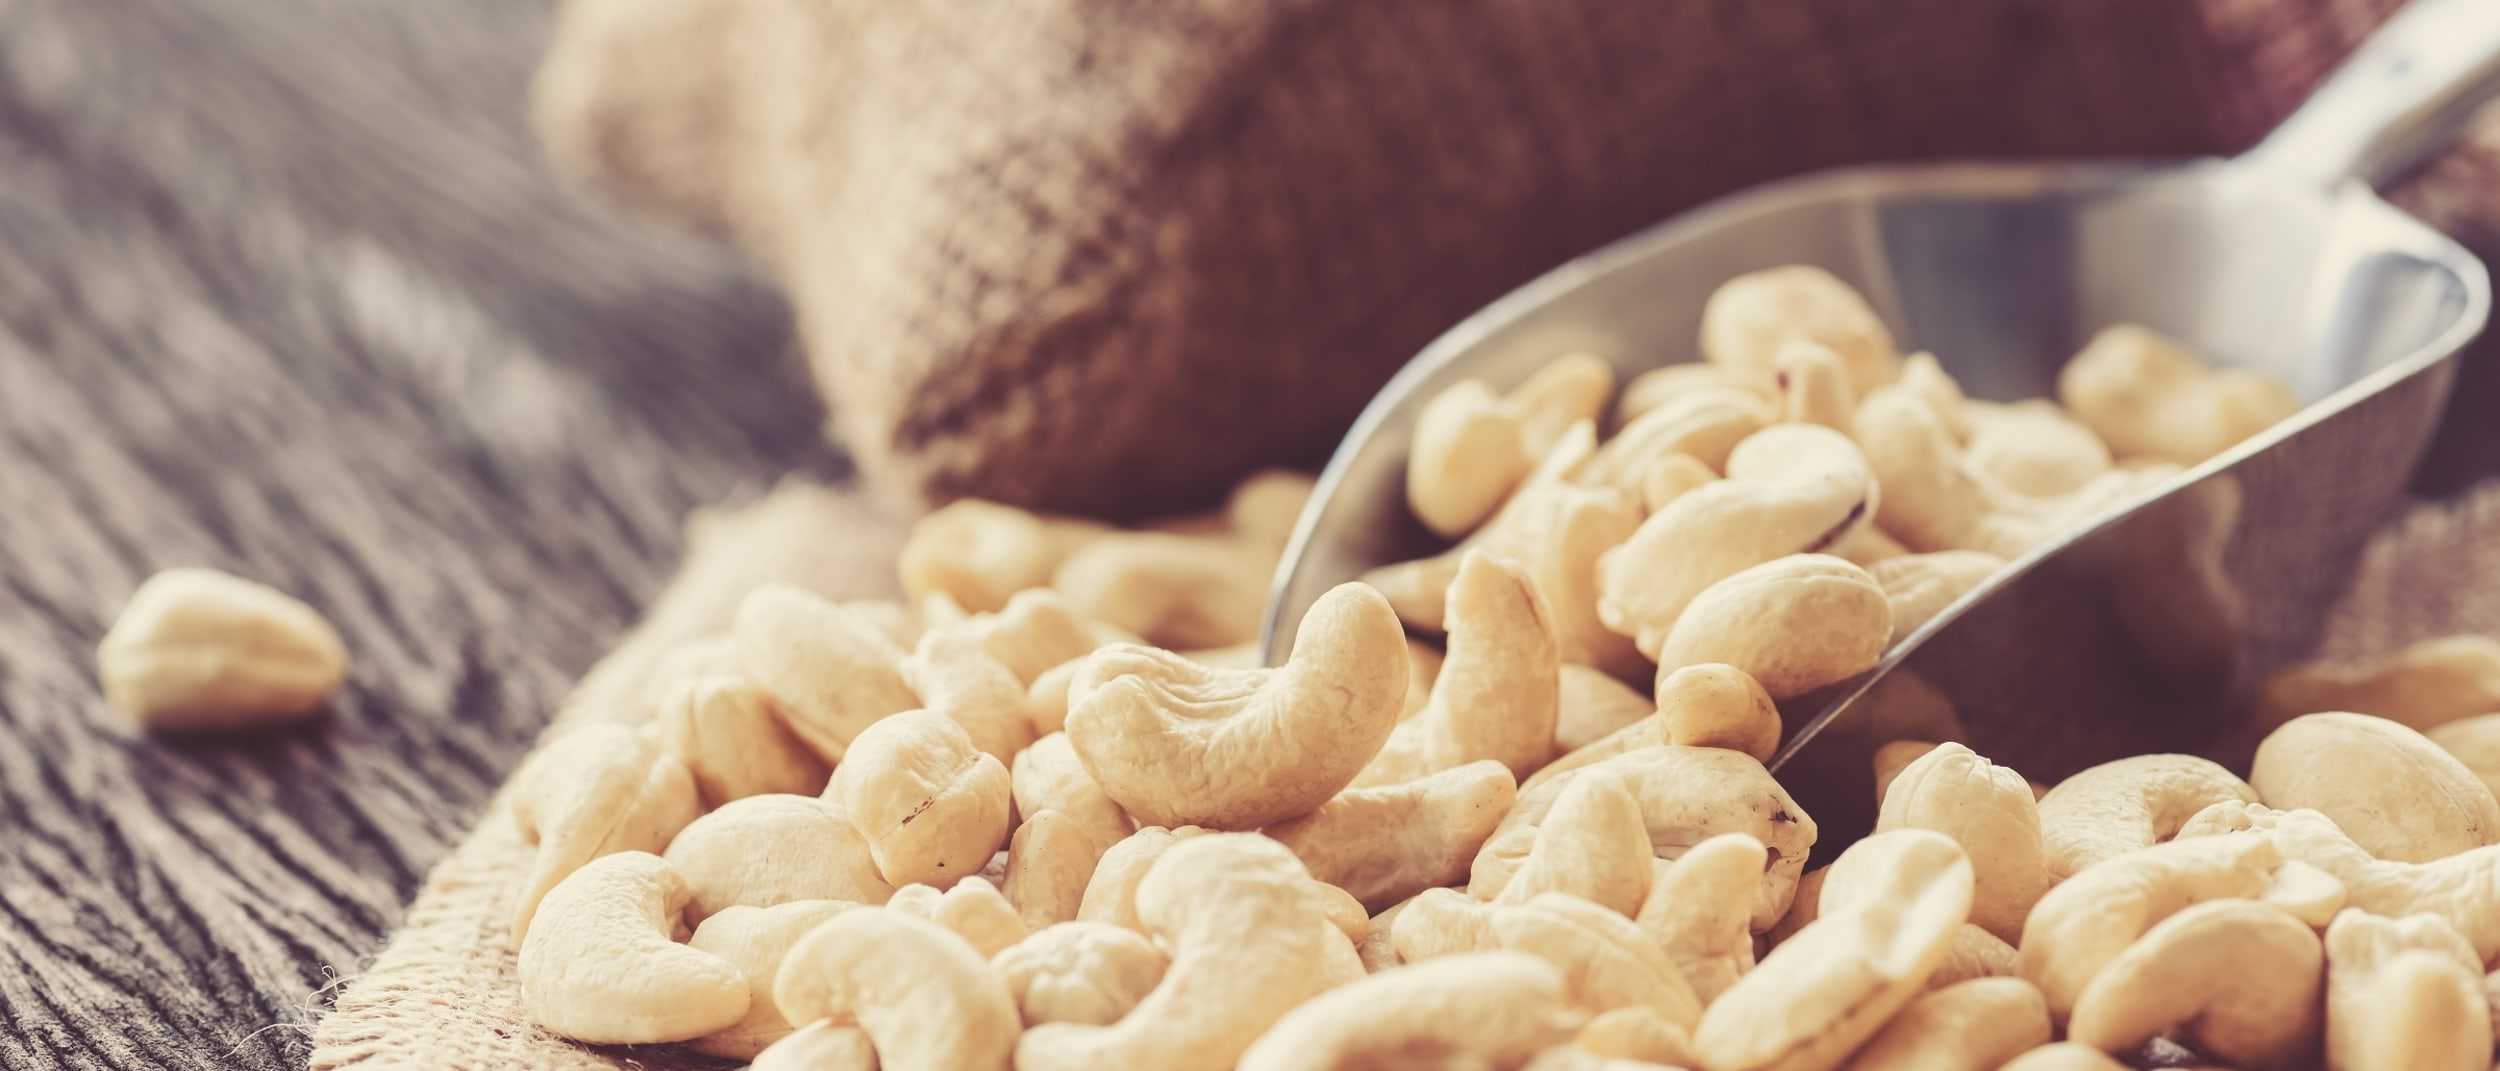 Go nuts for the new Woolworths Nut Mixes